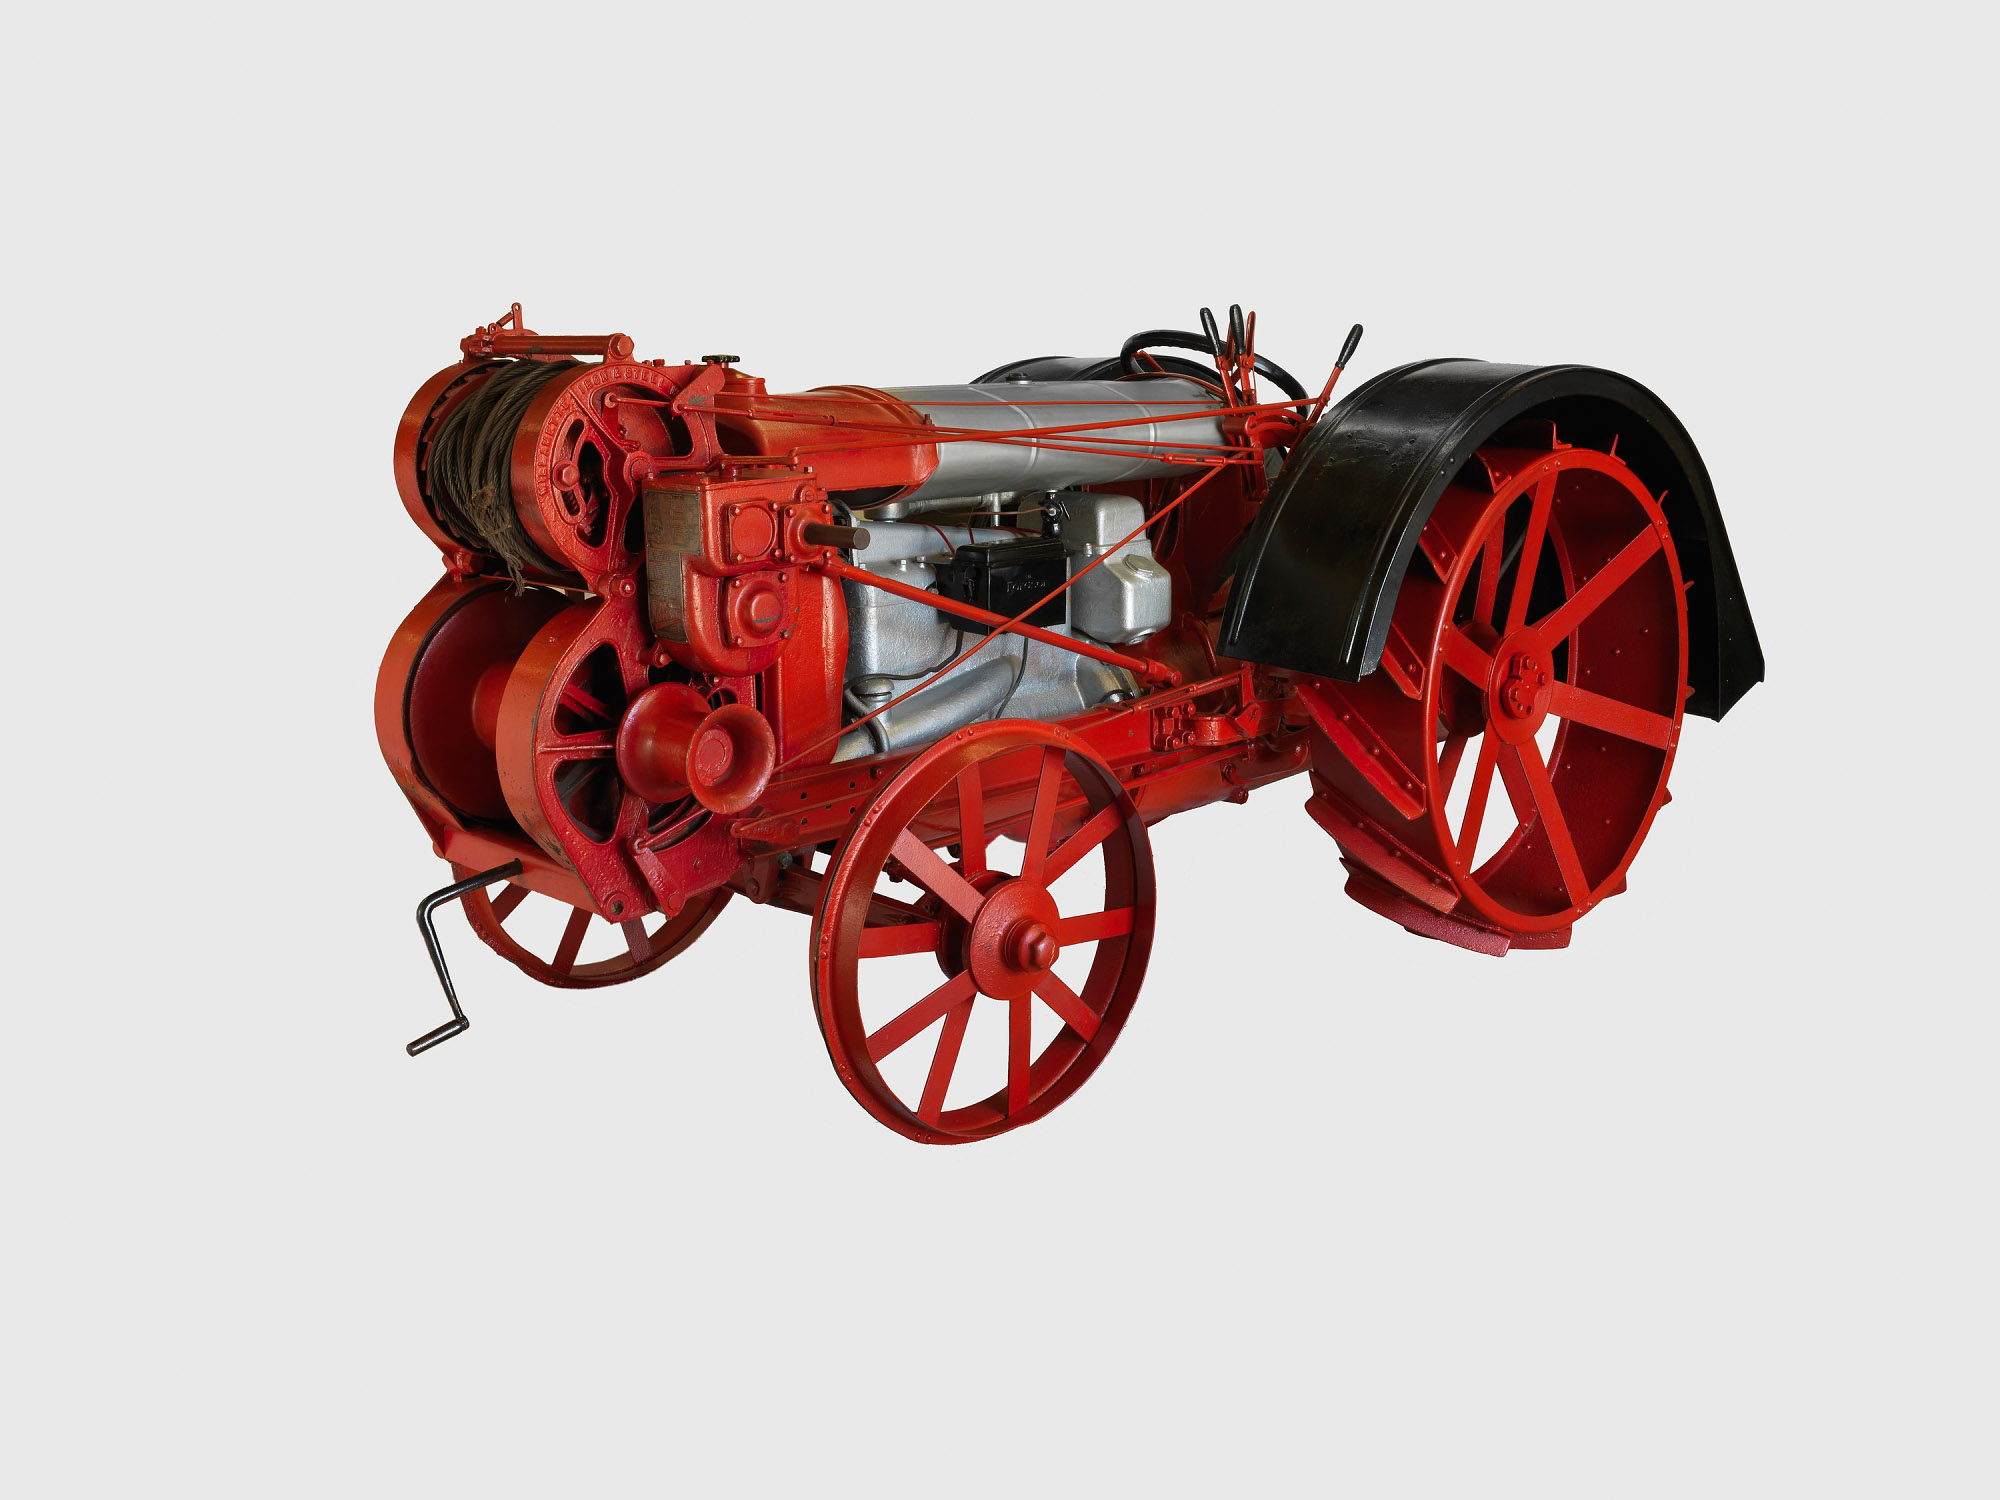 A red tractor, with a smaller front wheel and larger back wheel.